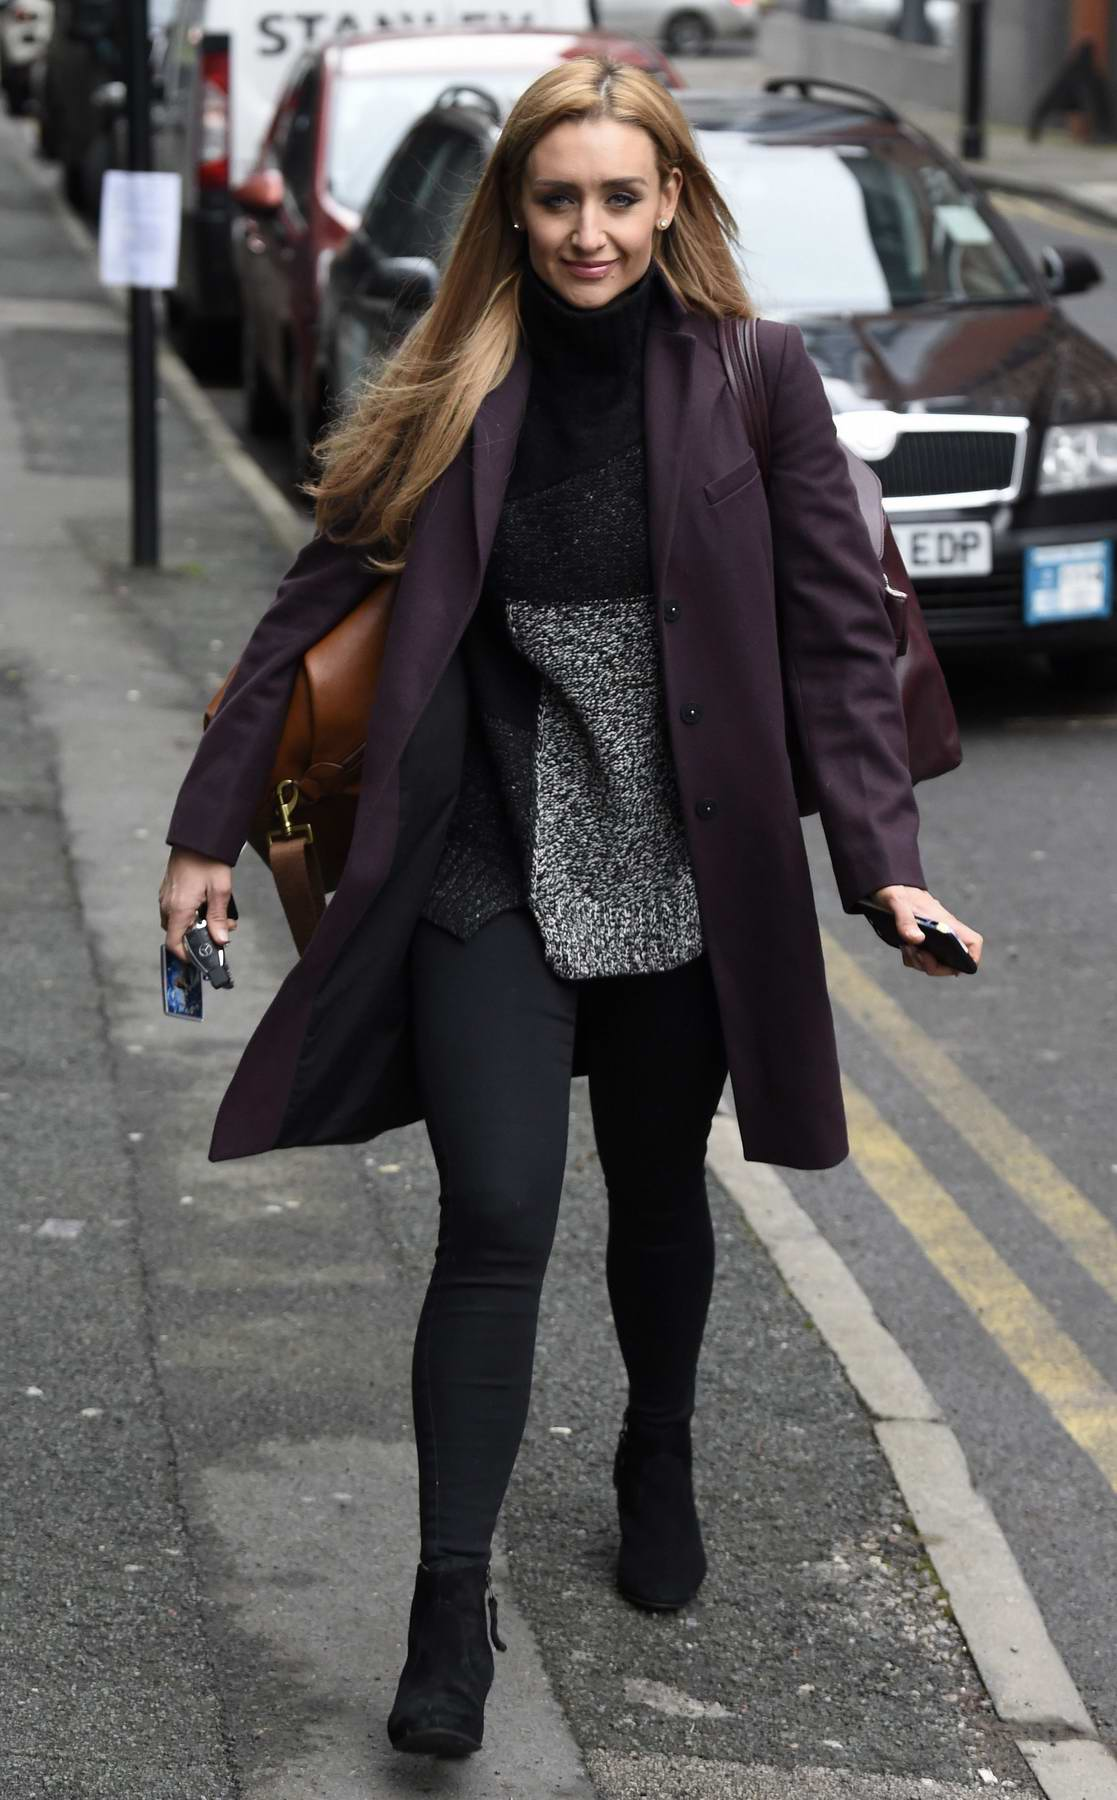 Catherine Tyldesley spotted out running errands in Manchester City Centre, Manchester, UK